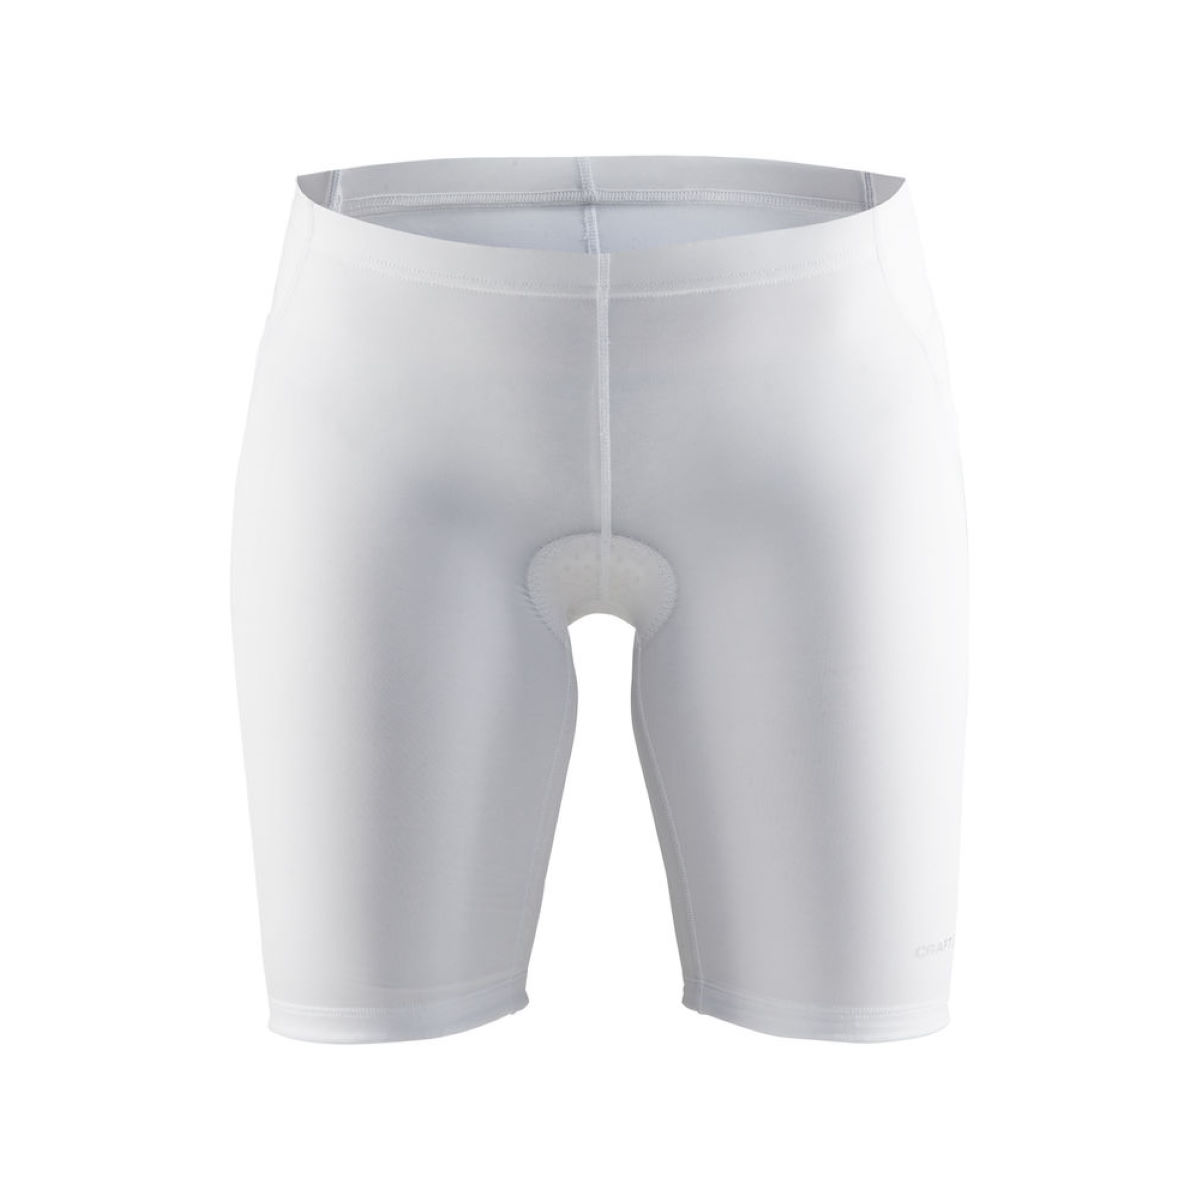 Boxer cycliste Femme Craft Greatness - XS Blanc  Vêtements de corps